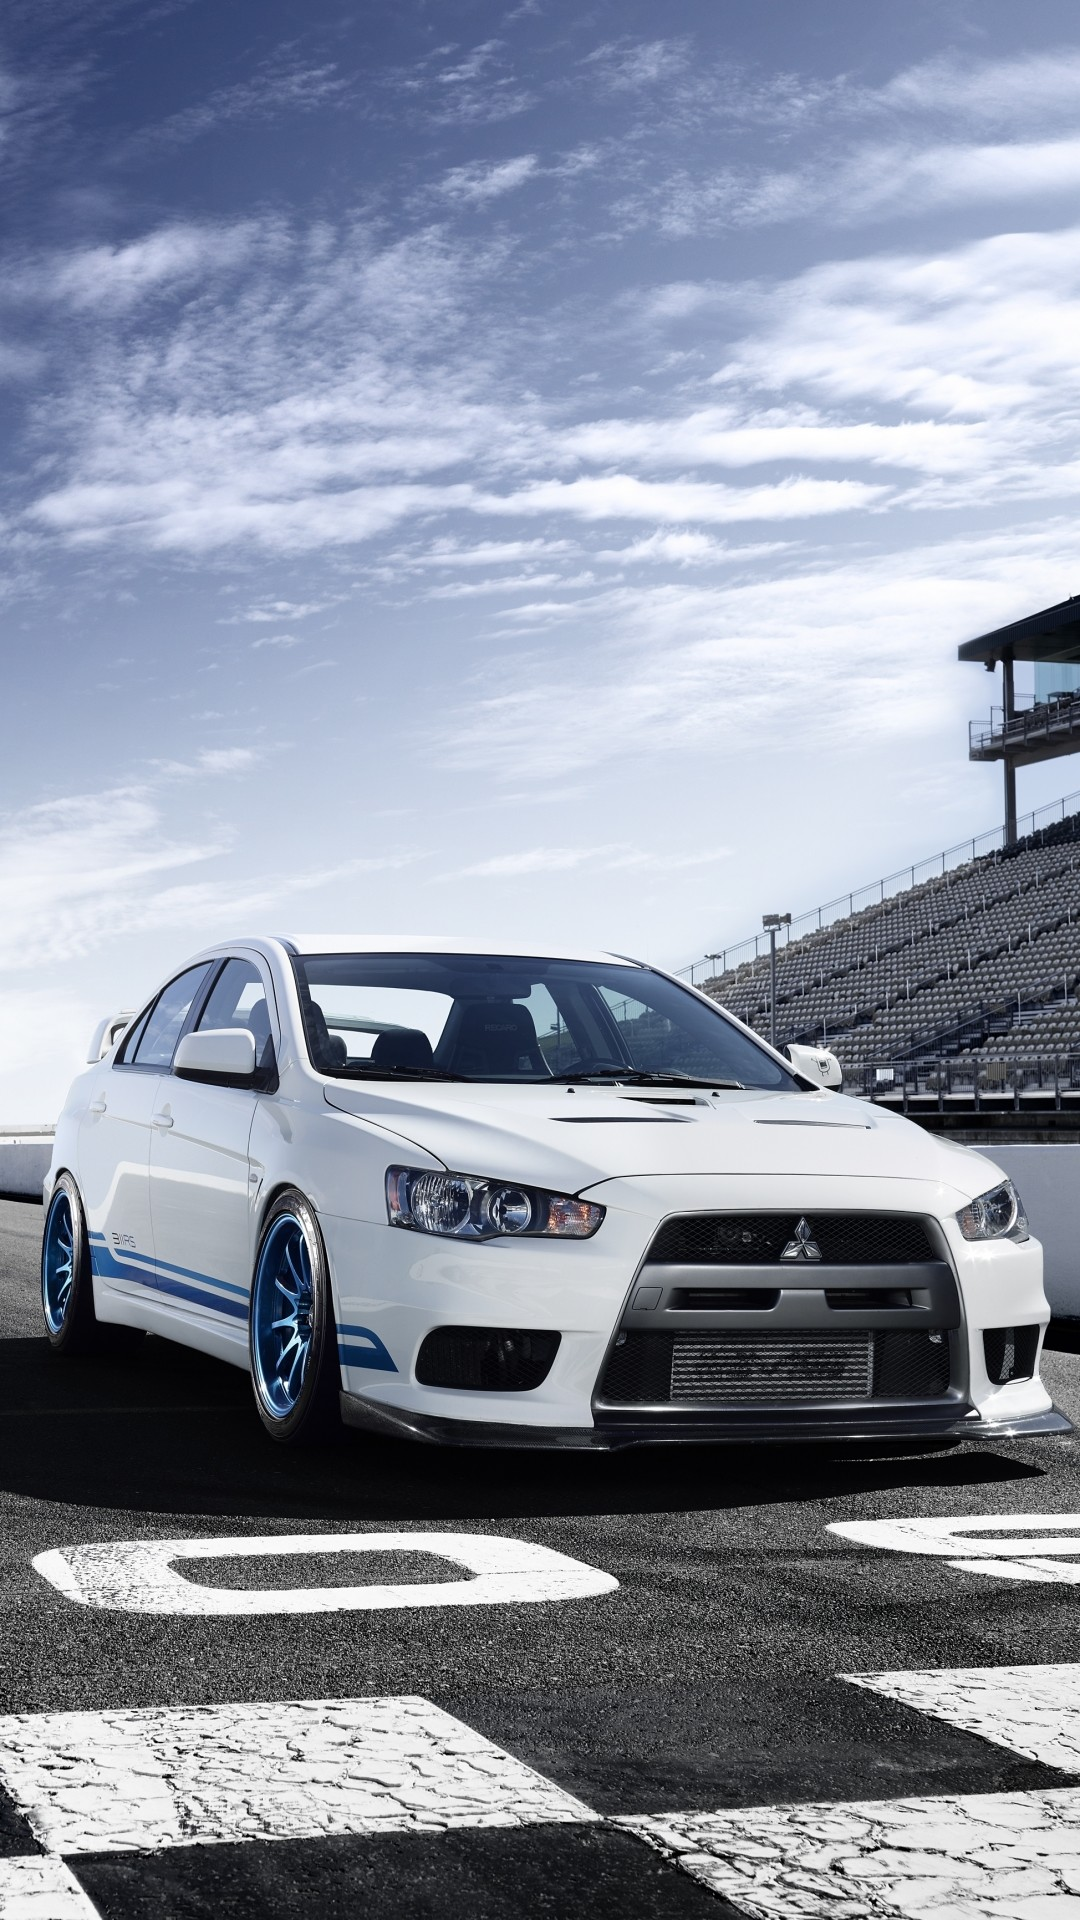 mitsubishi lancer evolution x wallpaper 71 images. Black Bedroom Furniture Sets. Home Design Ideas